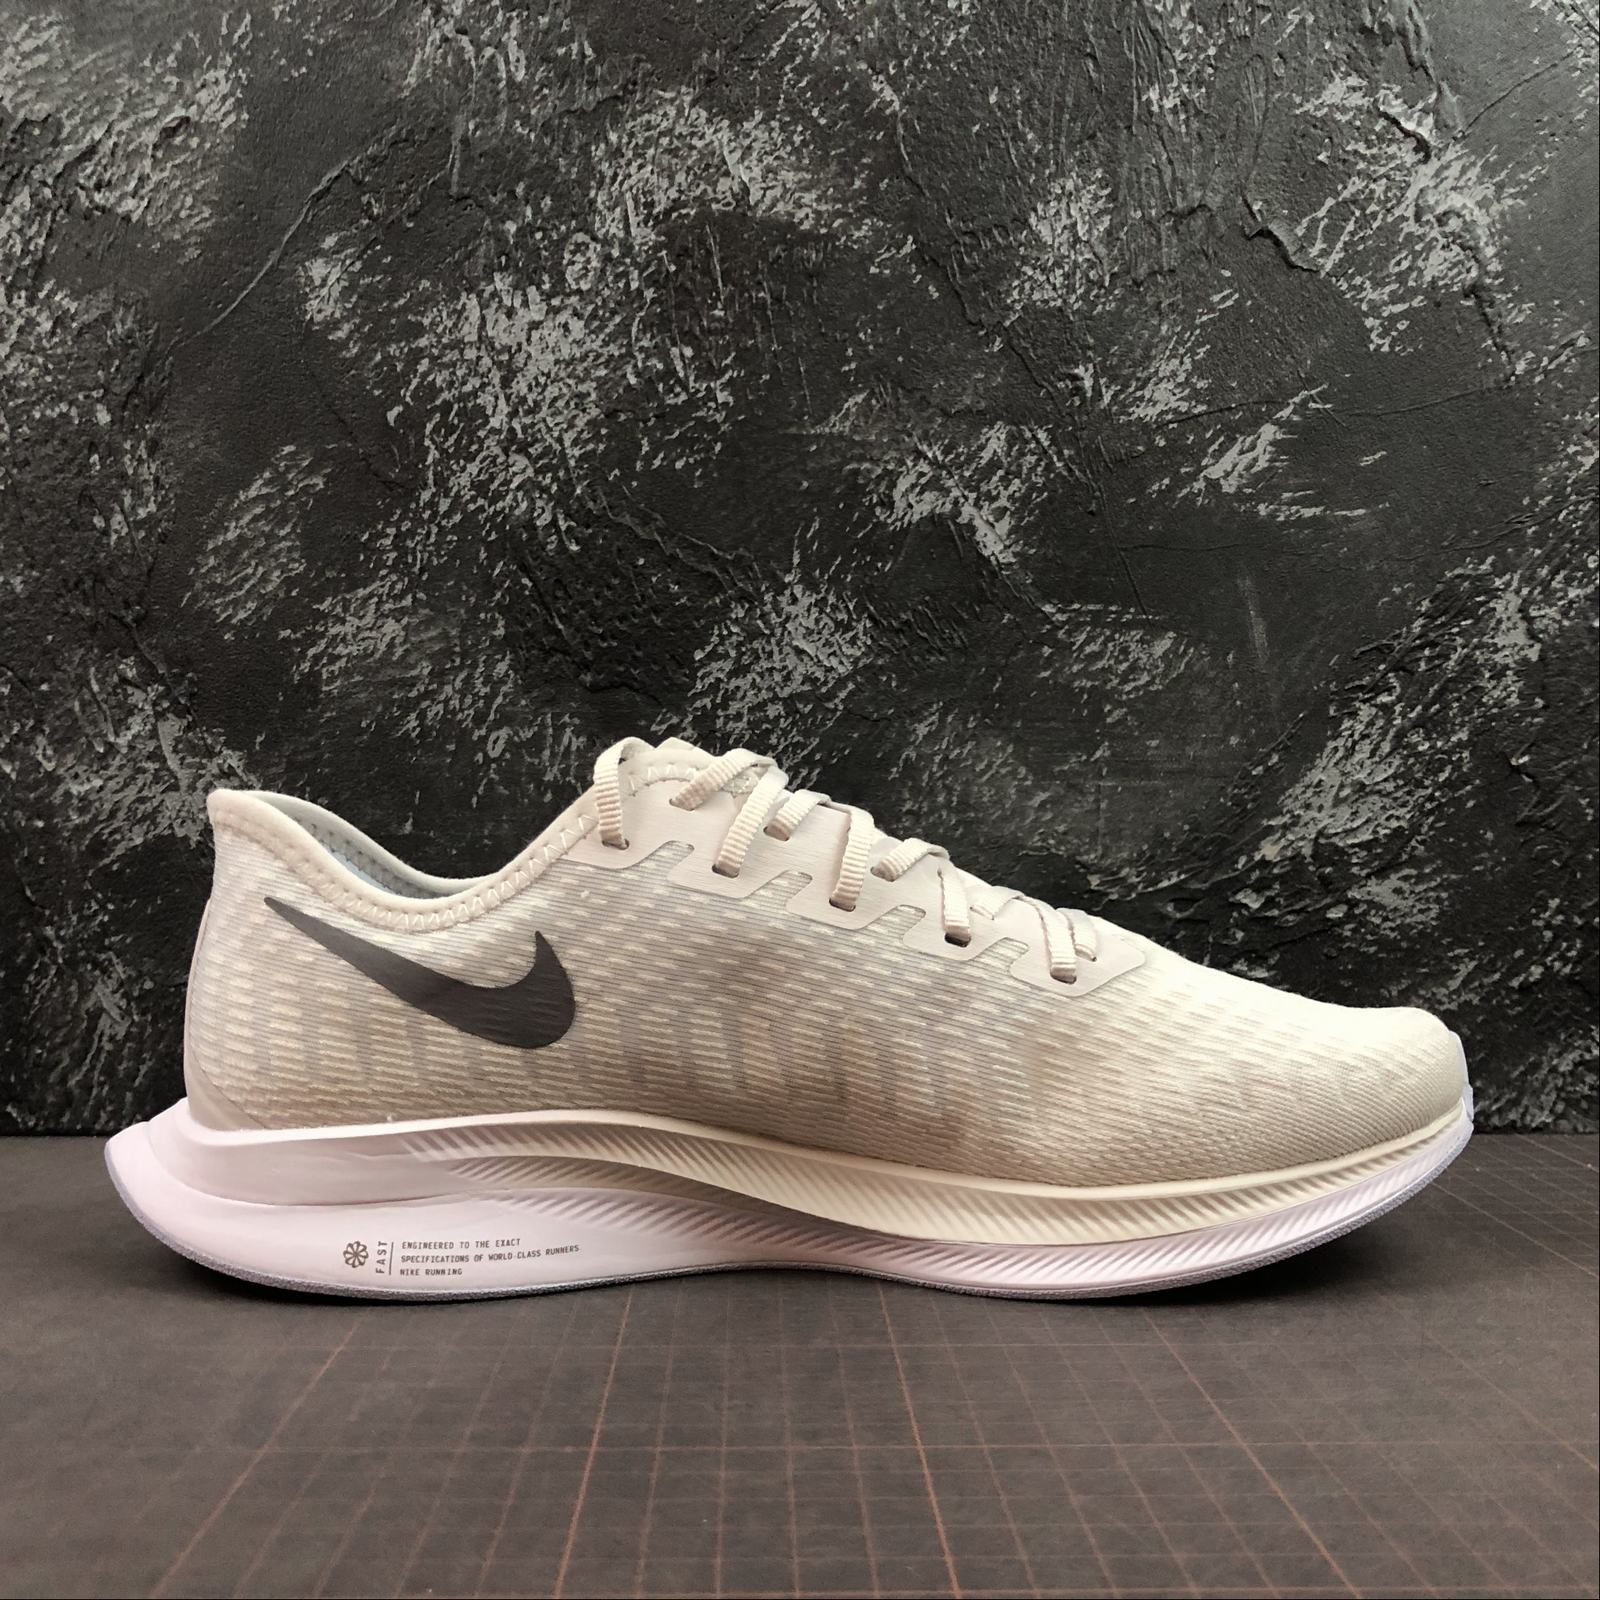 Мужские кроссовки Nike Zoom Pegasus Turbo 2 Men White,Grey - фото №2